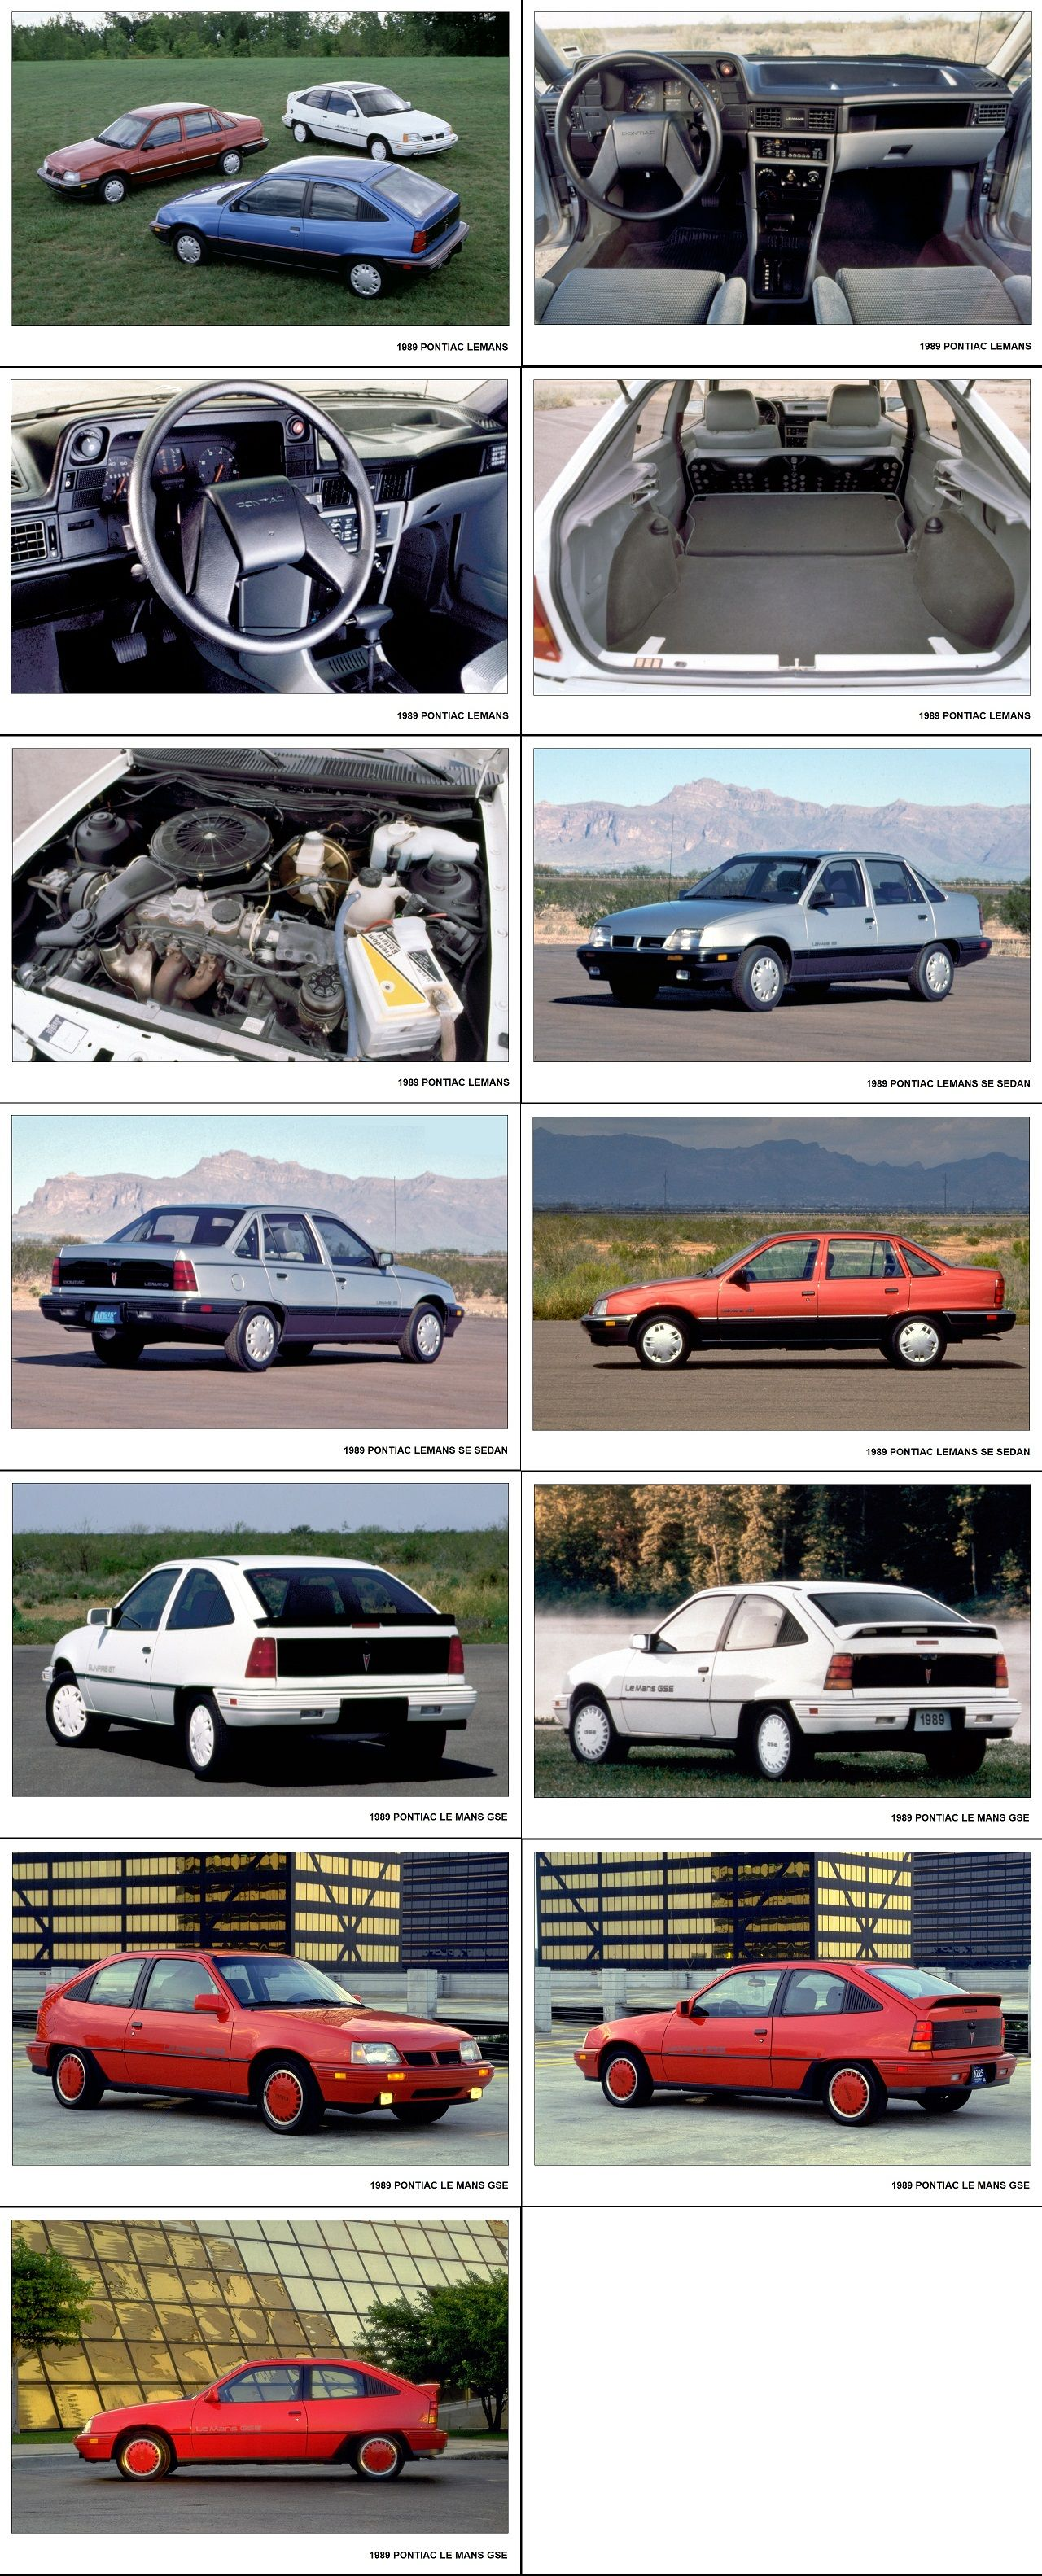 Pin by vauxpedia on Vauxhall Astra MK2 variations - Pontiac LeMans  Pontiac Lemans on 1989 pontiac solstice, 1989 pontiac gto, 1989 pontiac t1000, 1989 pontiac trans sport, 1989 pontiac nascar, 1989 pontiac skylark, 1989 pontiac safari, 1989 pontiac sunbird, 1989 pontiac oldsmobile, 1989 pontiac pursuit, 1989 pontiac parisienne, 1989 pontiac ventura, 1989 pontiac sunfire, 1989 pontiac grand prix le, 1989 pontiac grandprix, 1989 pontiac bonneville, 1989 pontiac tempest, 1989 pontiac grand am, 1989 pontiac grand prix se,